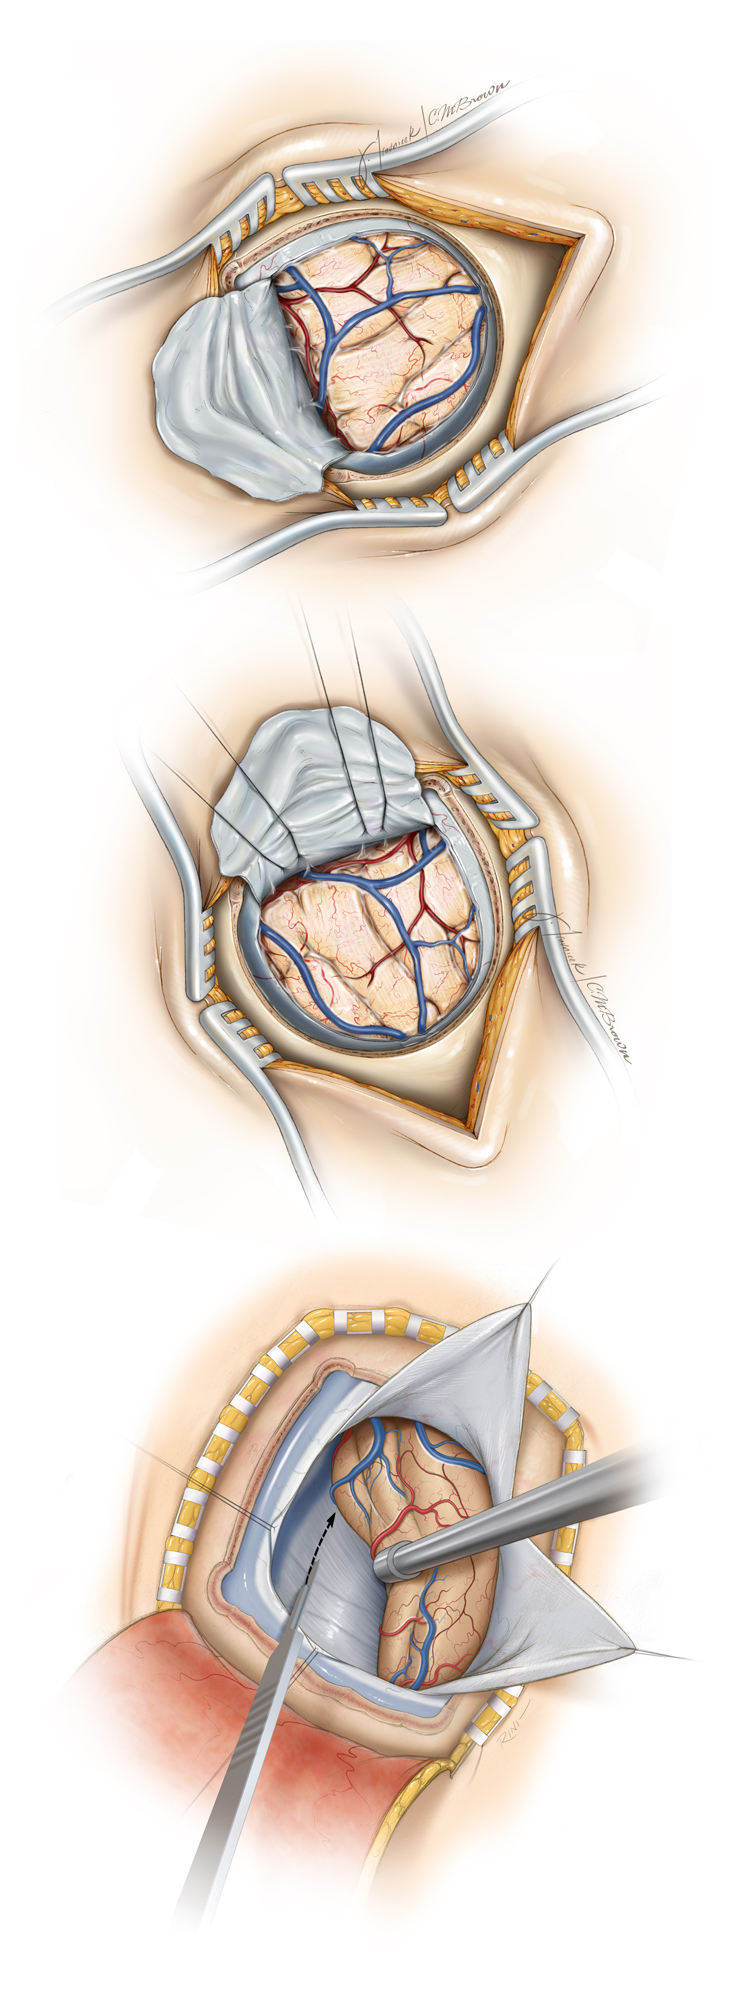 Figure 7: For convexity or intraparenchymal lesions, the dura is opened in a cruciate or curvilinear fashion based on the dural venous sinus(es) (top). If I plan to reach the interhemispheric space, the dura is opened in a curvilinear fashion centered over the superior sagittal sinus (middle), whereas for the pineal region or basal occipital surface (bottom), I open the dura in a cruciate fashion centered over both the sagittal and transverse sinuses.